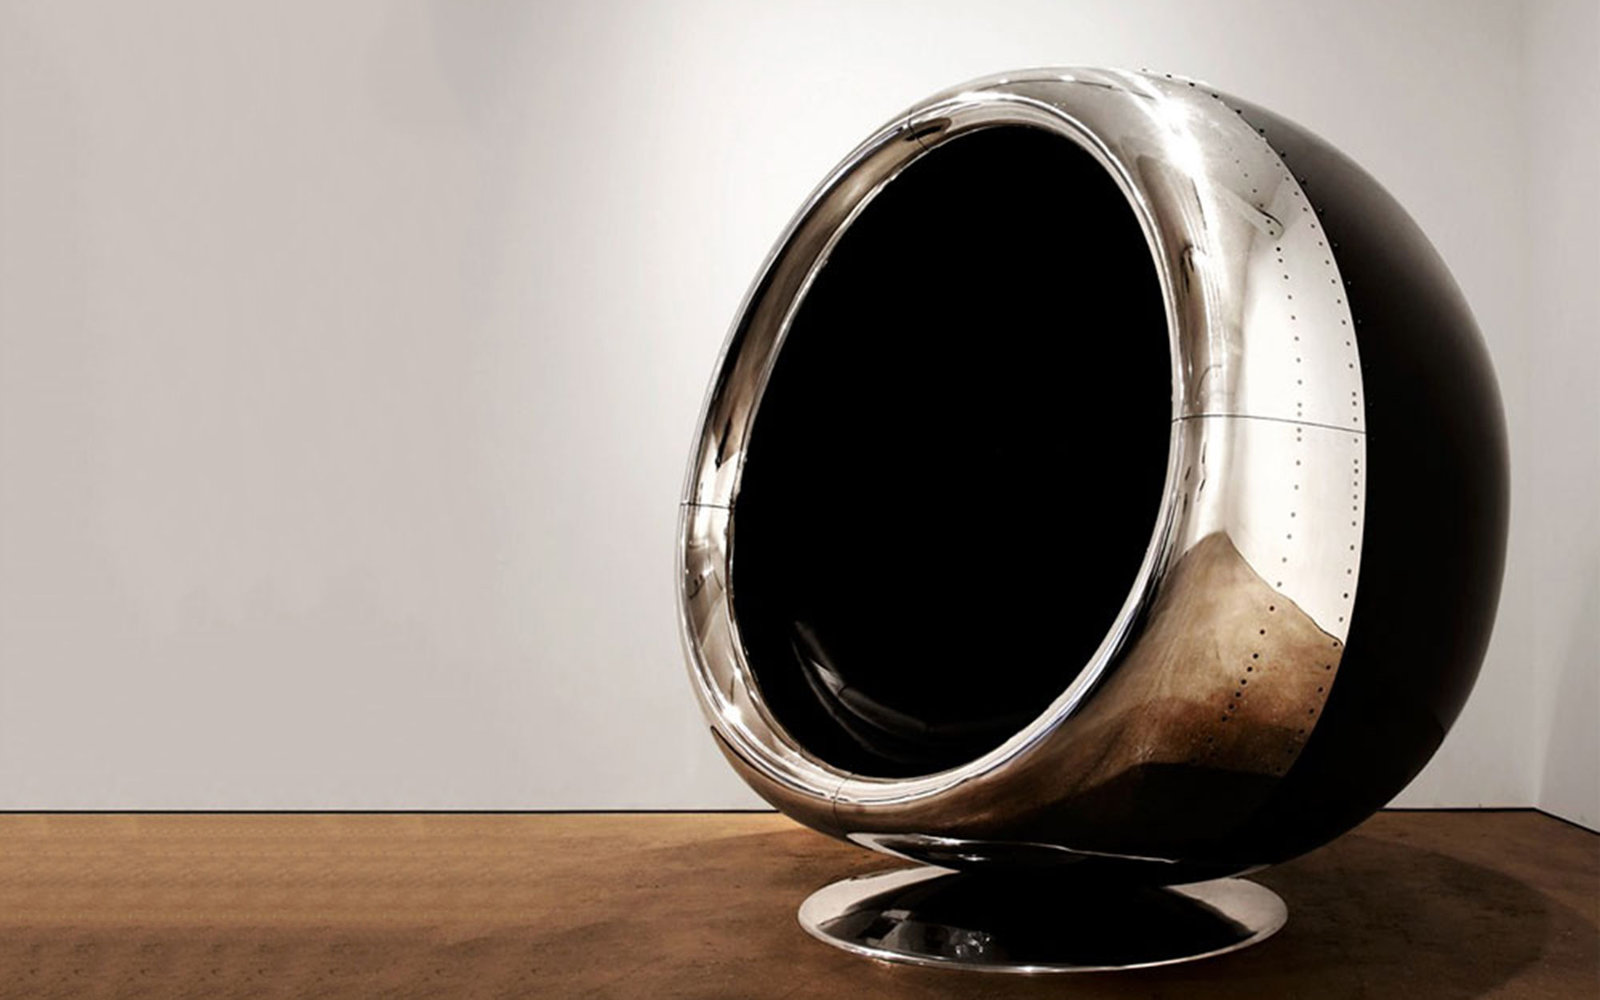 chair made from a recycled boeing 737 engine